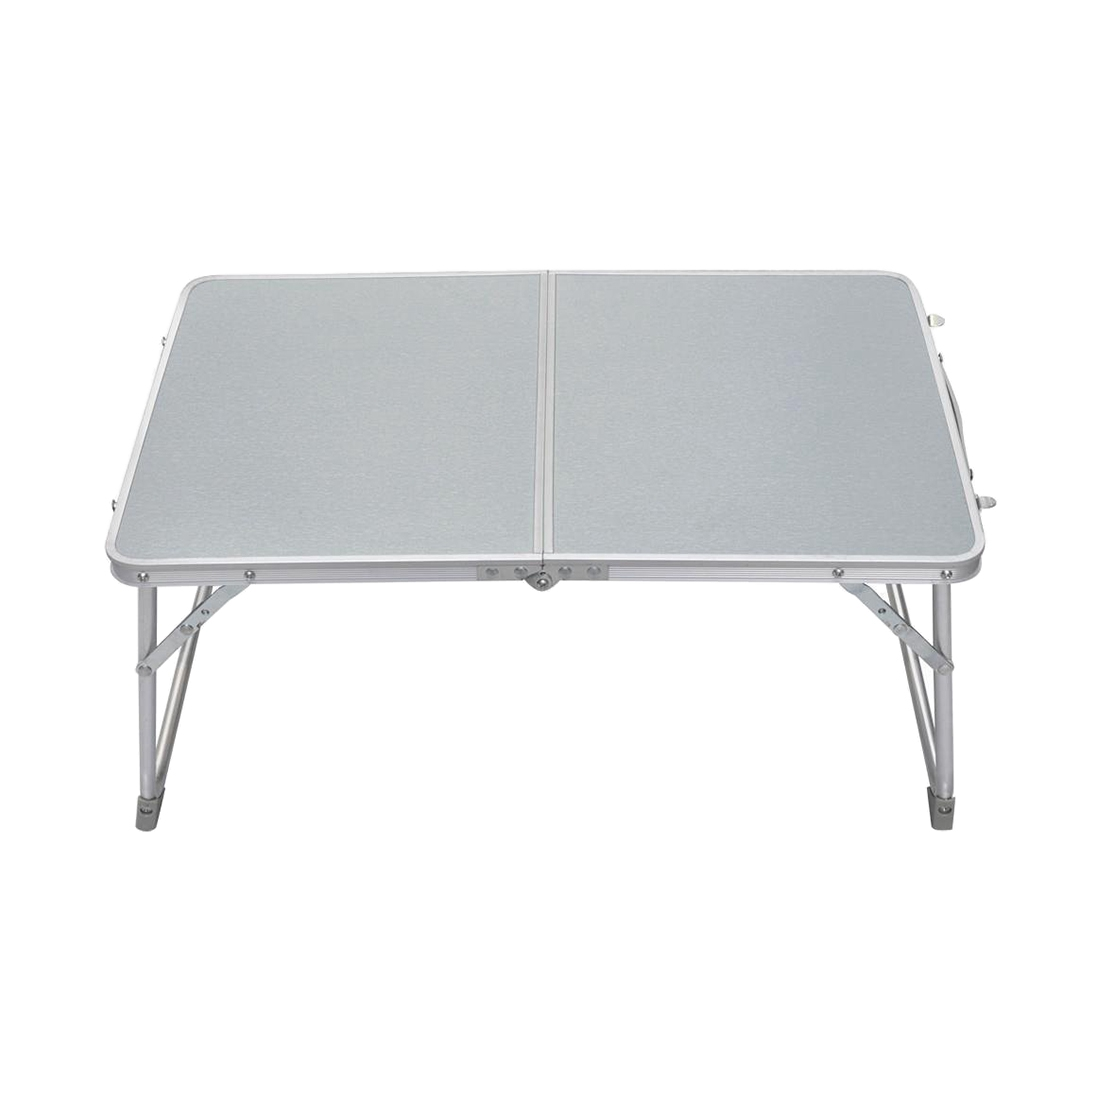 Hot-Small 62x41x28cm/24.4x16.1x11 PC Laptop Table Bed Desk Camping Picnic BBQ (Silver White)Hot-Small 62x41x28cm/24.4x16.1x11 PC Laptop Table Bed Desk Camping Picnic BBQ (Silver White)